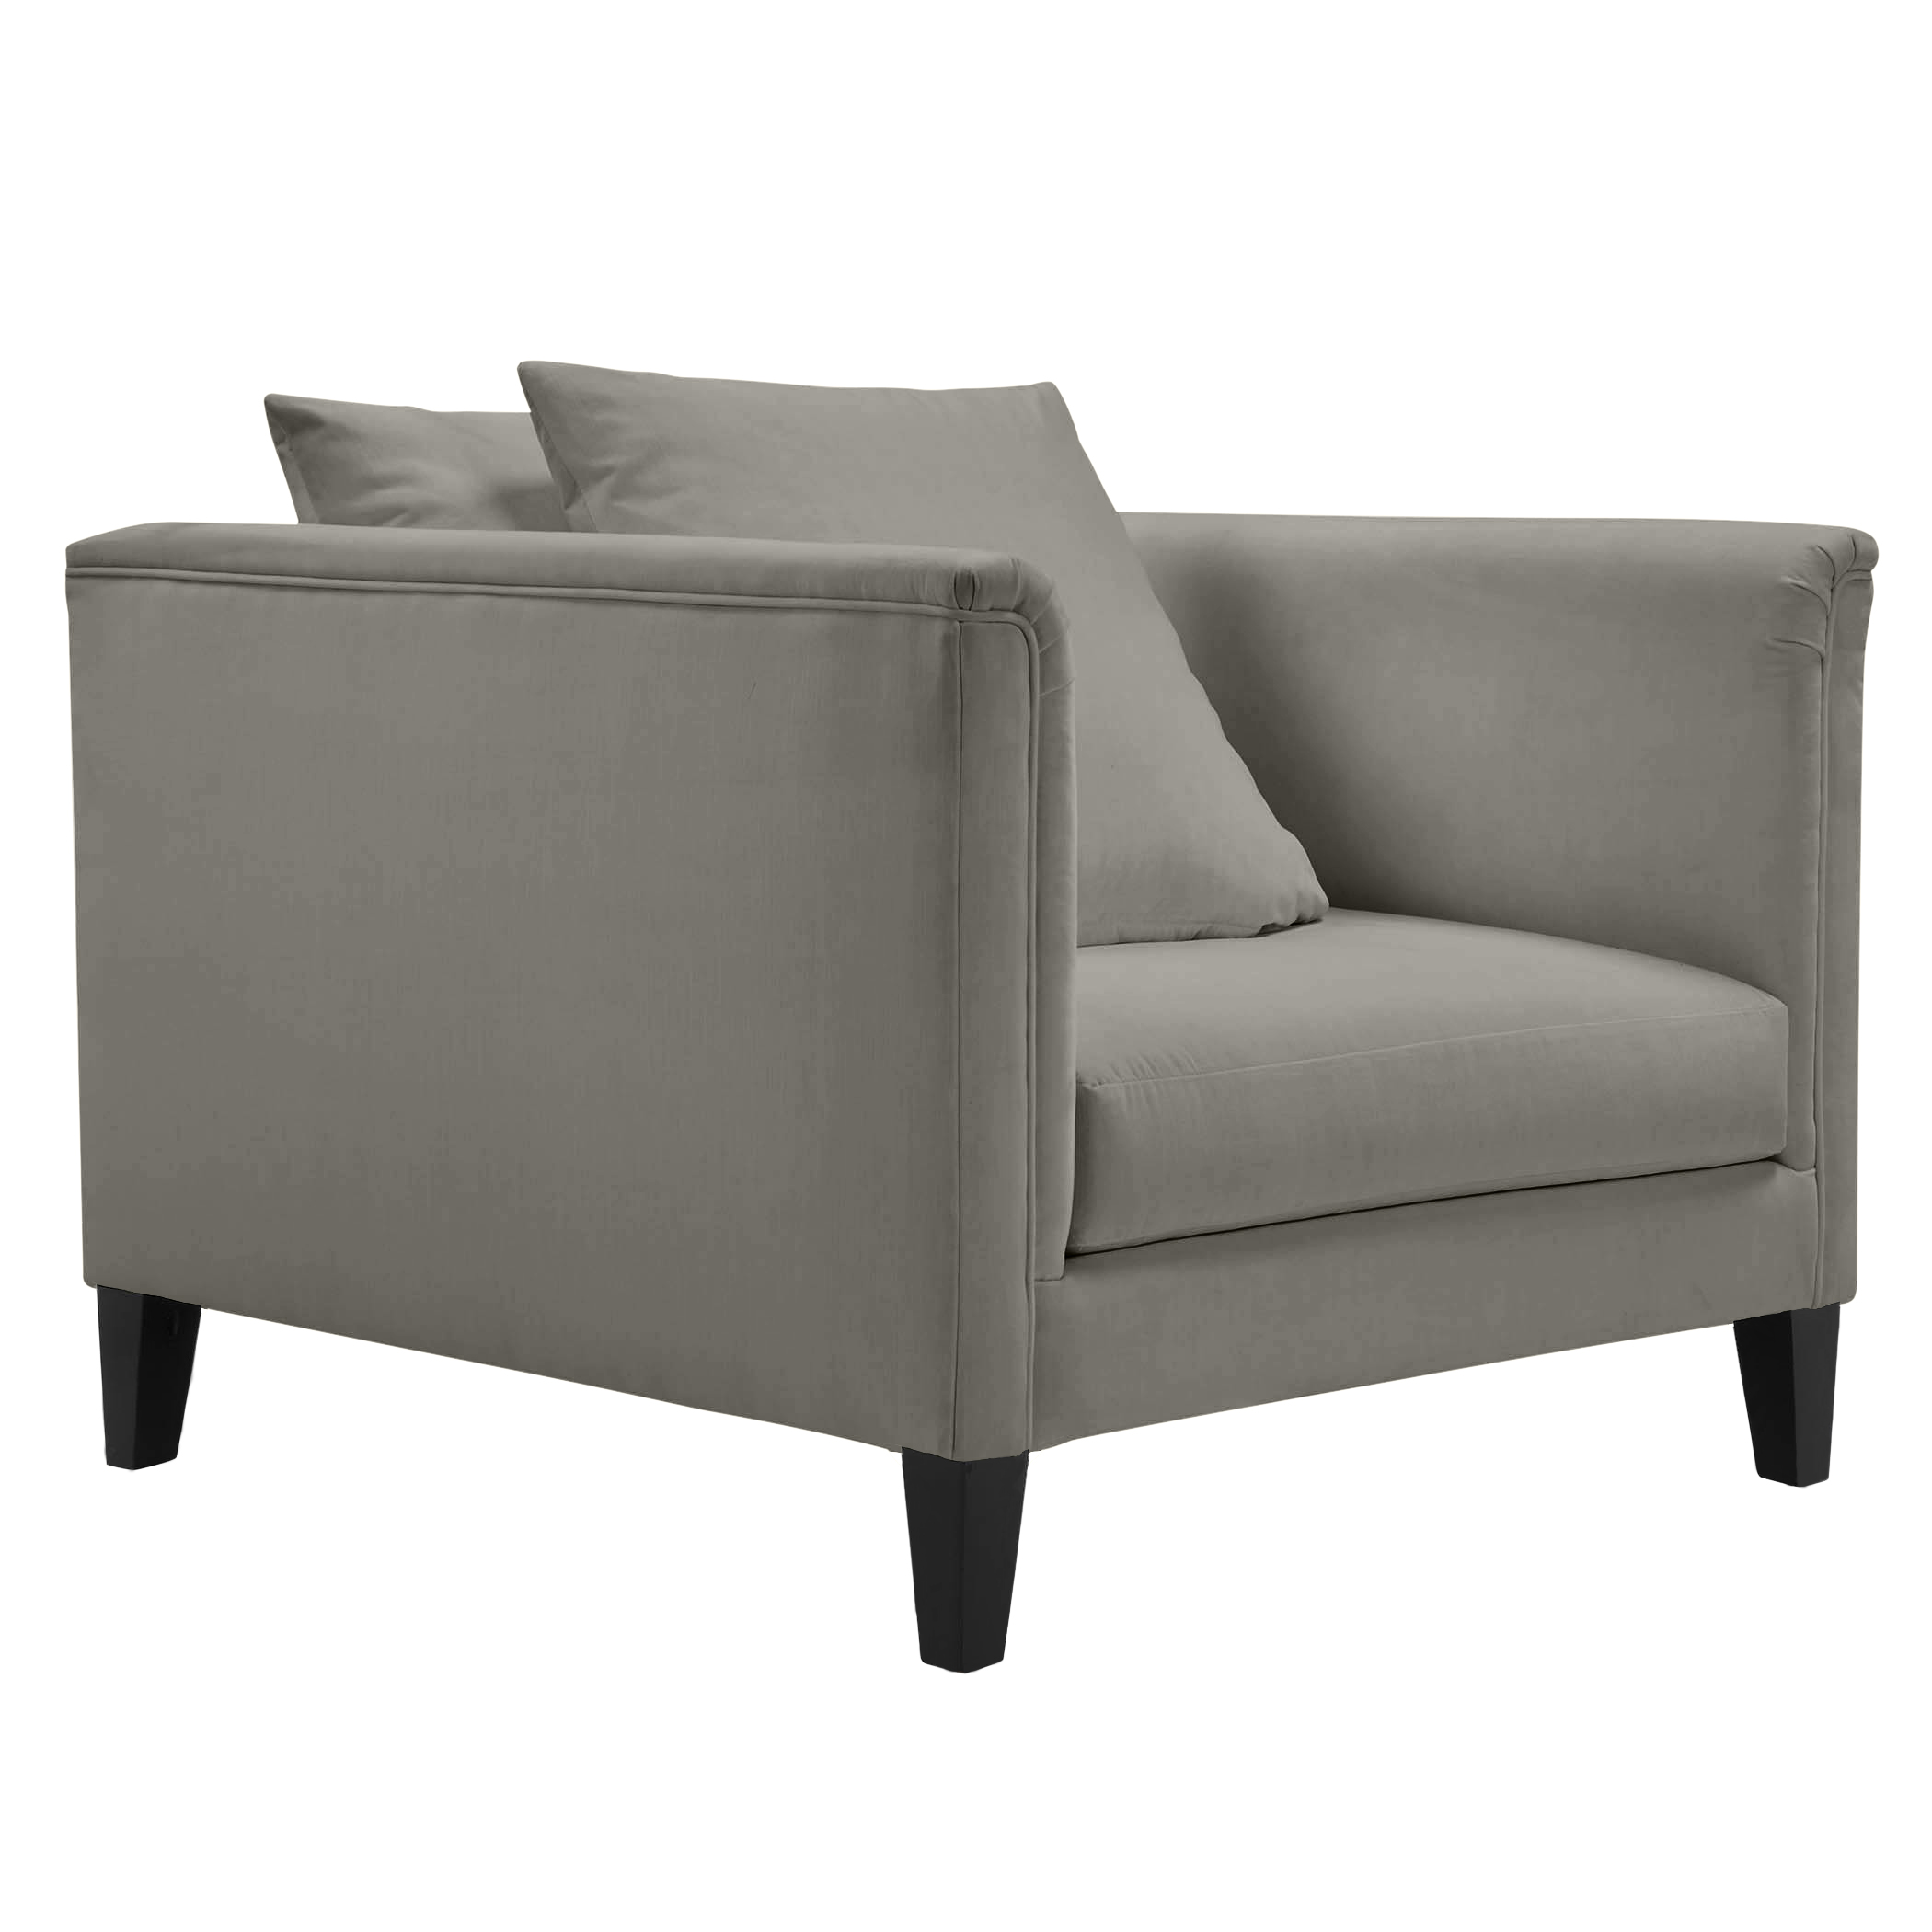 Details Soft Roll Arm Chair